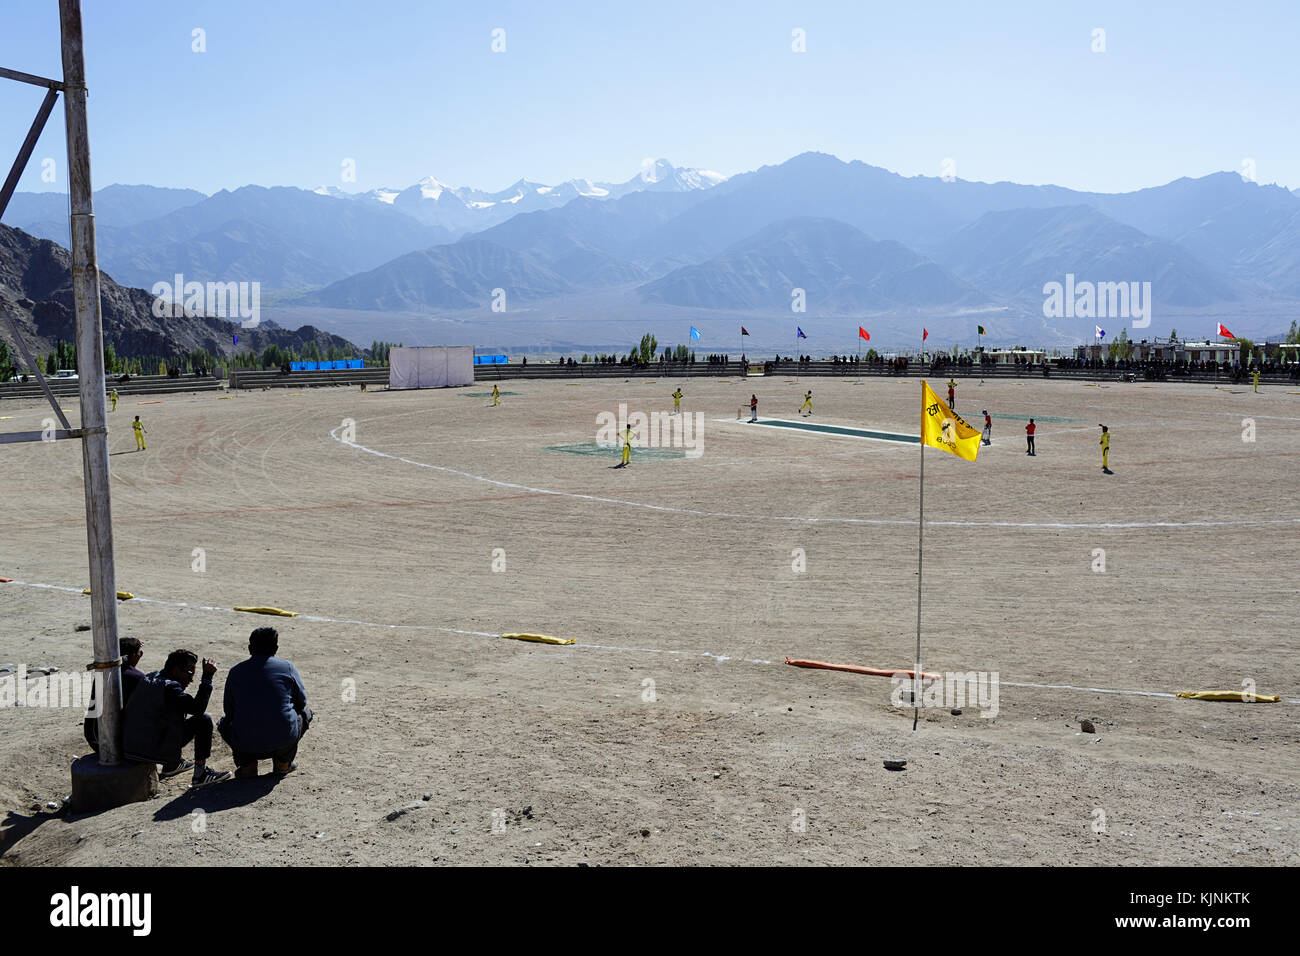 Local cricket players during the match, Leh, Ladakh, Jammu and Kashmir, India. Stock Photo